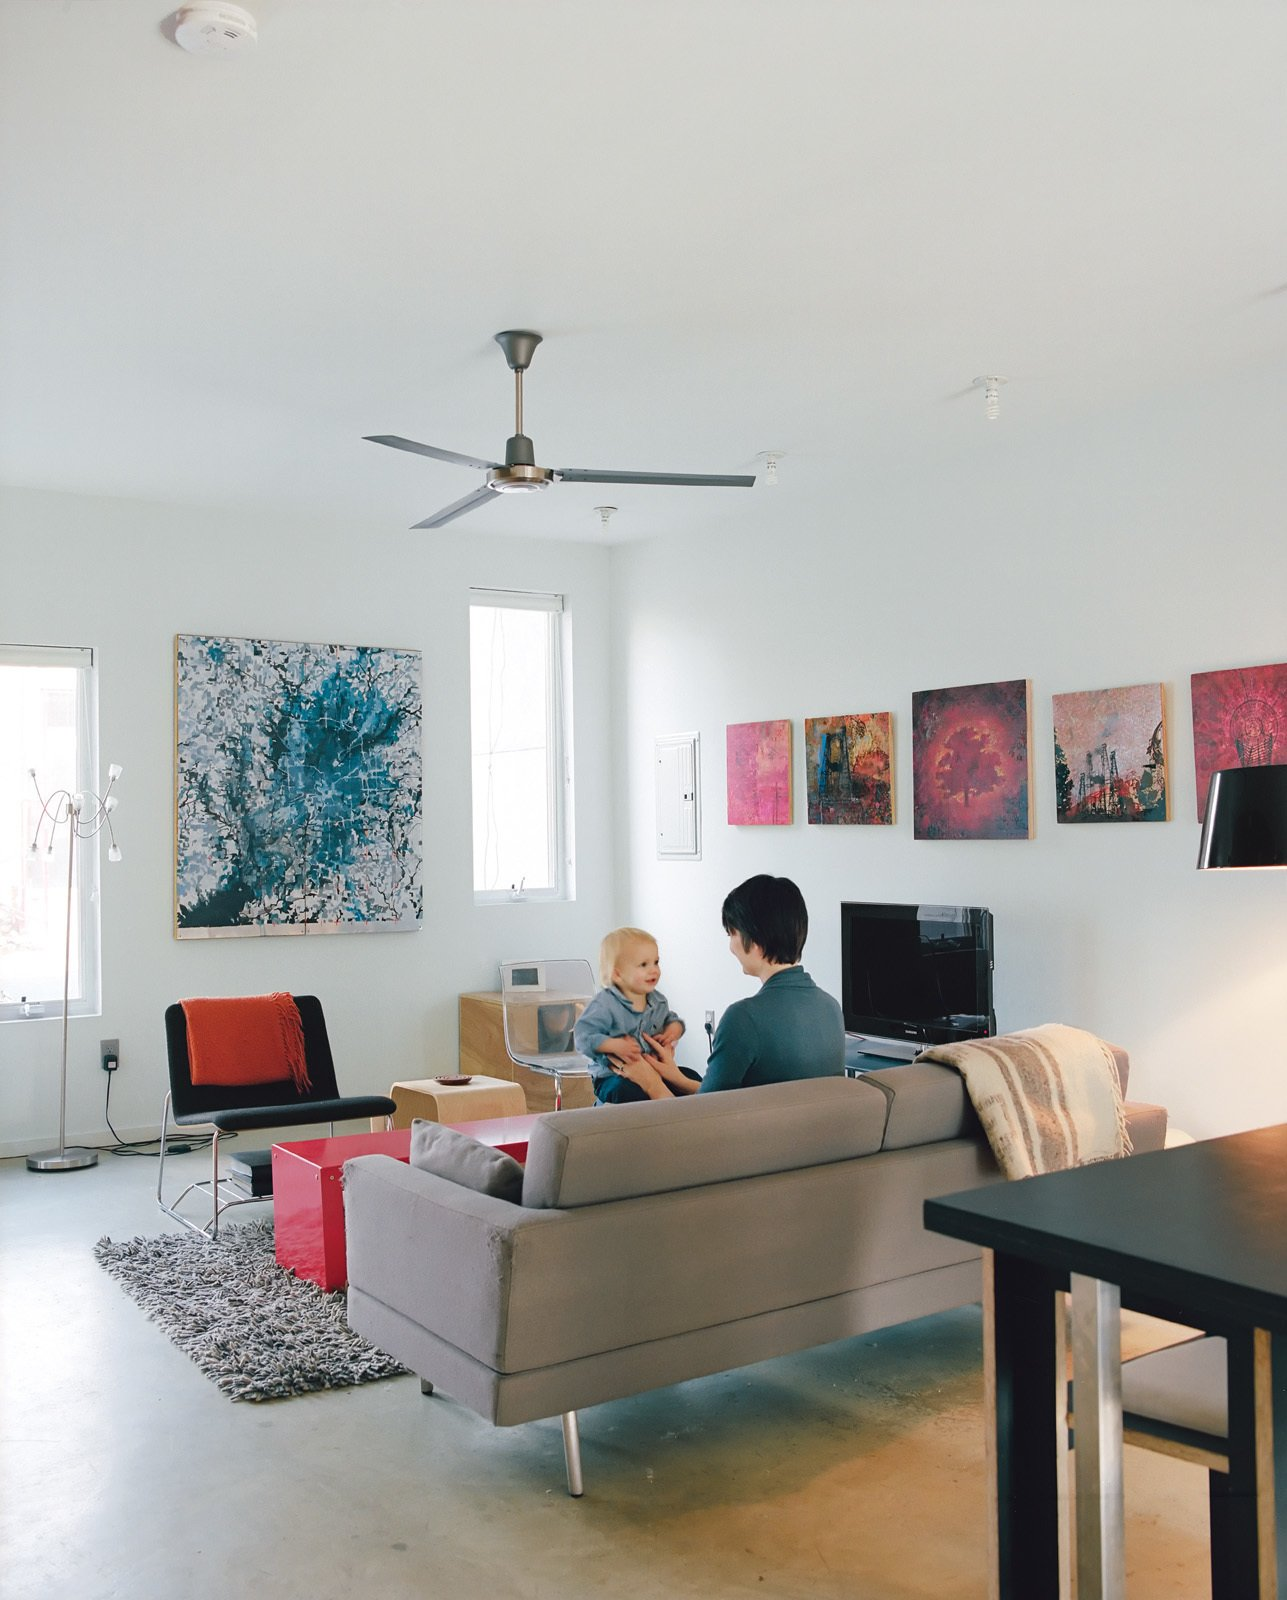 Courtney and Teague play in the living room opposite a Perch lounge designed by Eric Pfeiffer for Offi. The paintings behind the TV are by artist Chris Clark.  Photo 9 of 11 in Green Urban Housing in Philadelphia